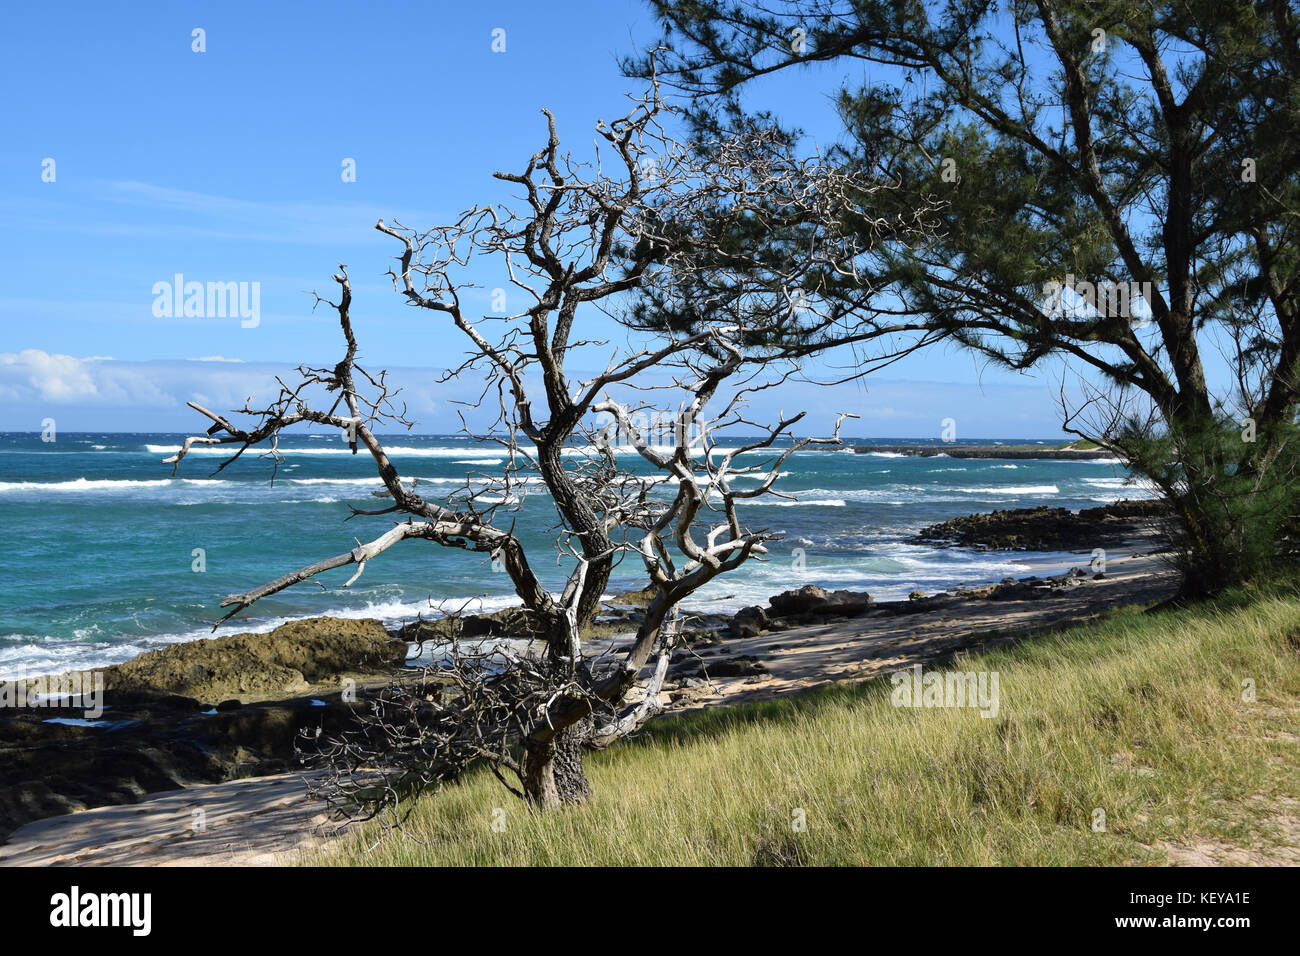 Hiking the Kahuku shoreline on the Oahu's North Shore is a beautiful way to discover Hawaii - Stock Image